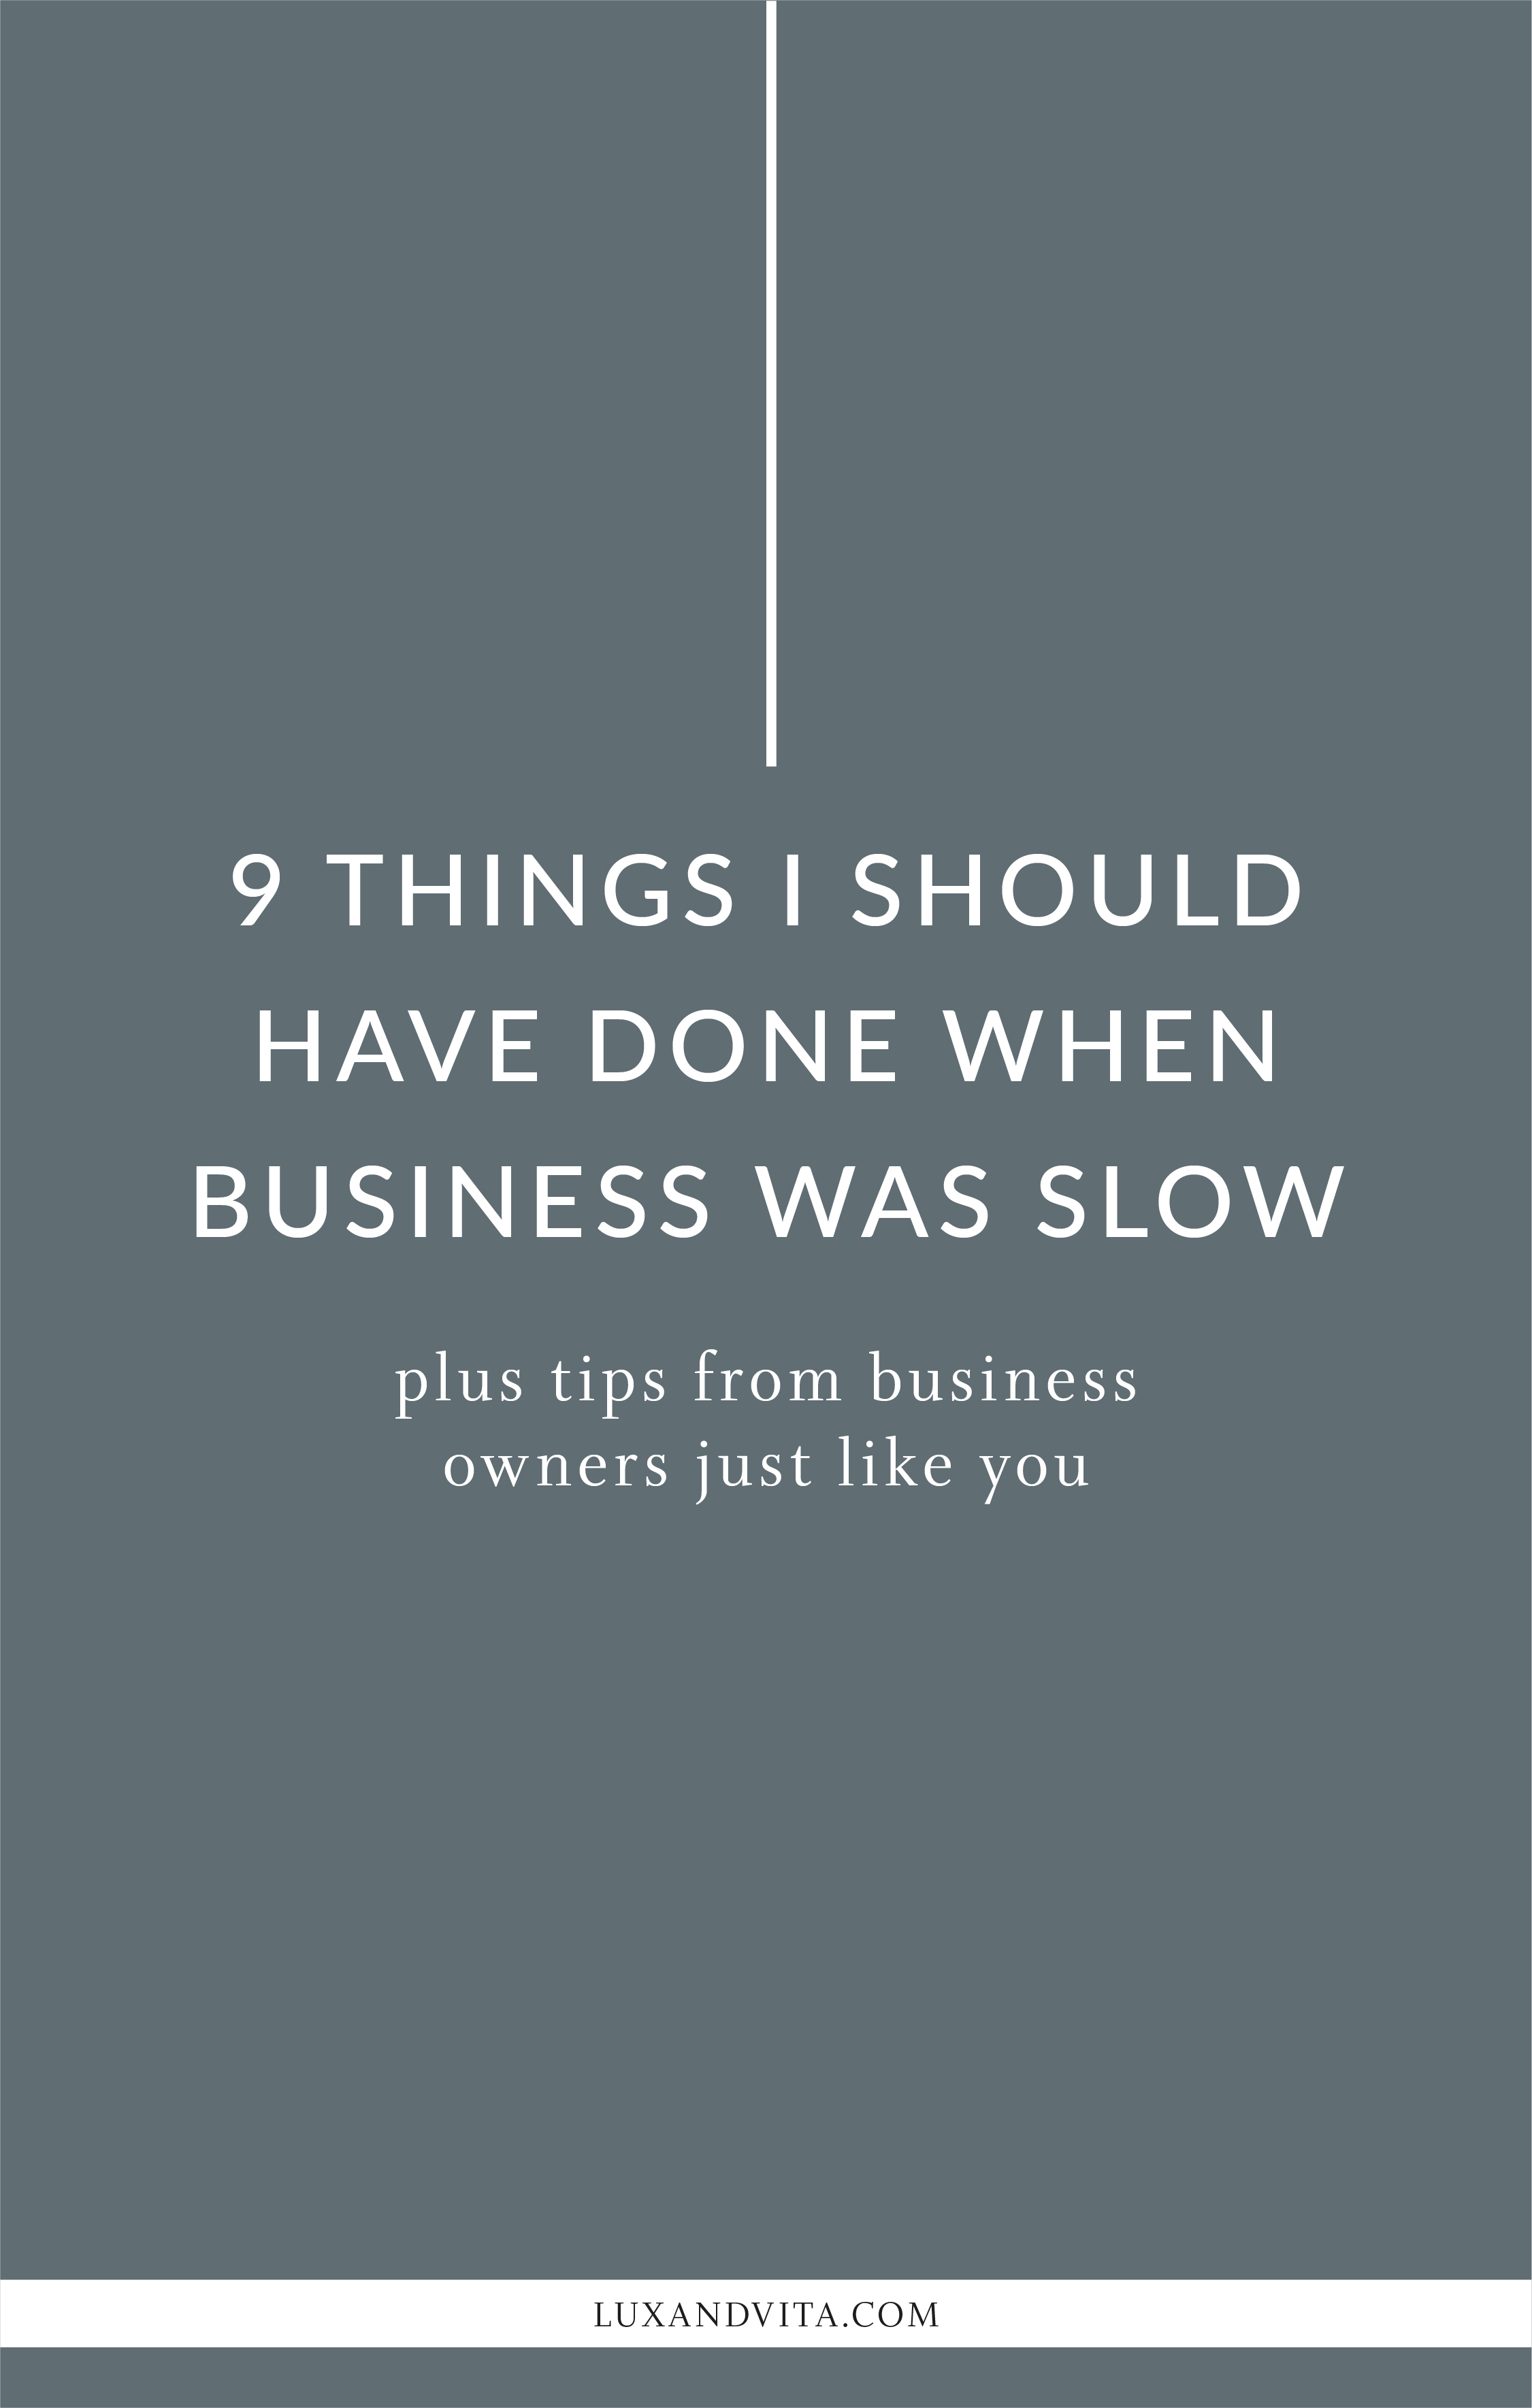 9 Things to do when business is slow_Pinterest 2.jpg